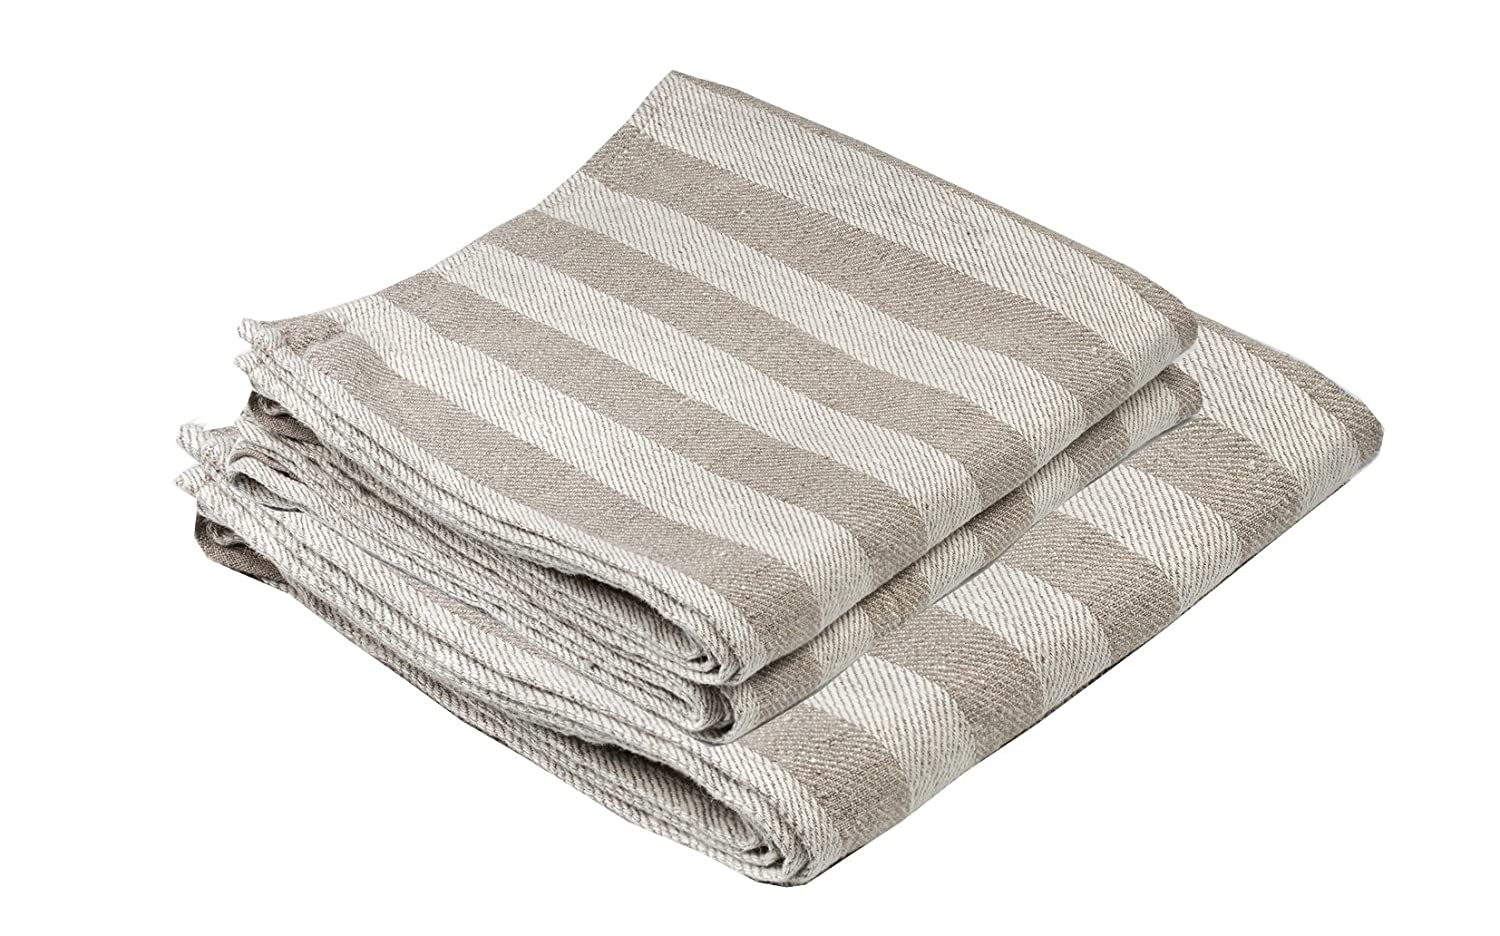 BLESS LINEN Jacquard Striped Pure Linen Towel Set of 3, Grey/White - Includes 1 Bath Towel and 2 Hand Towels TS-02003